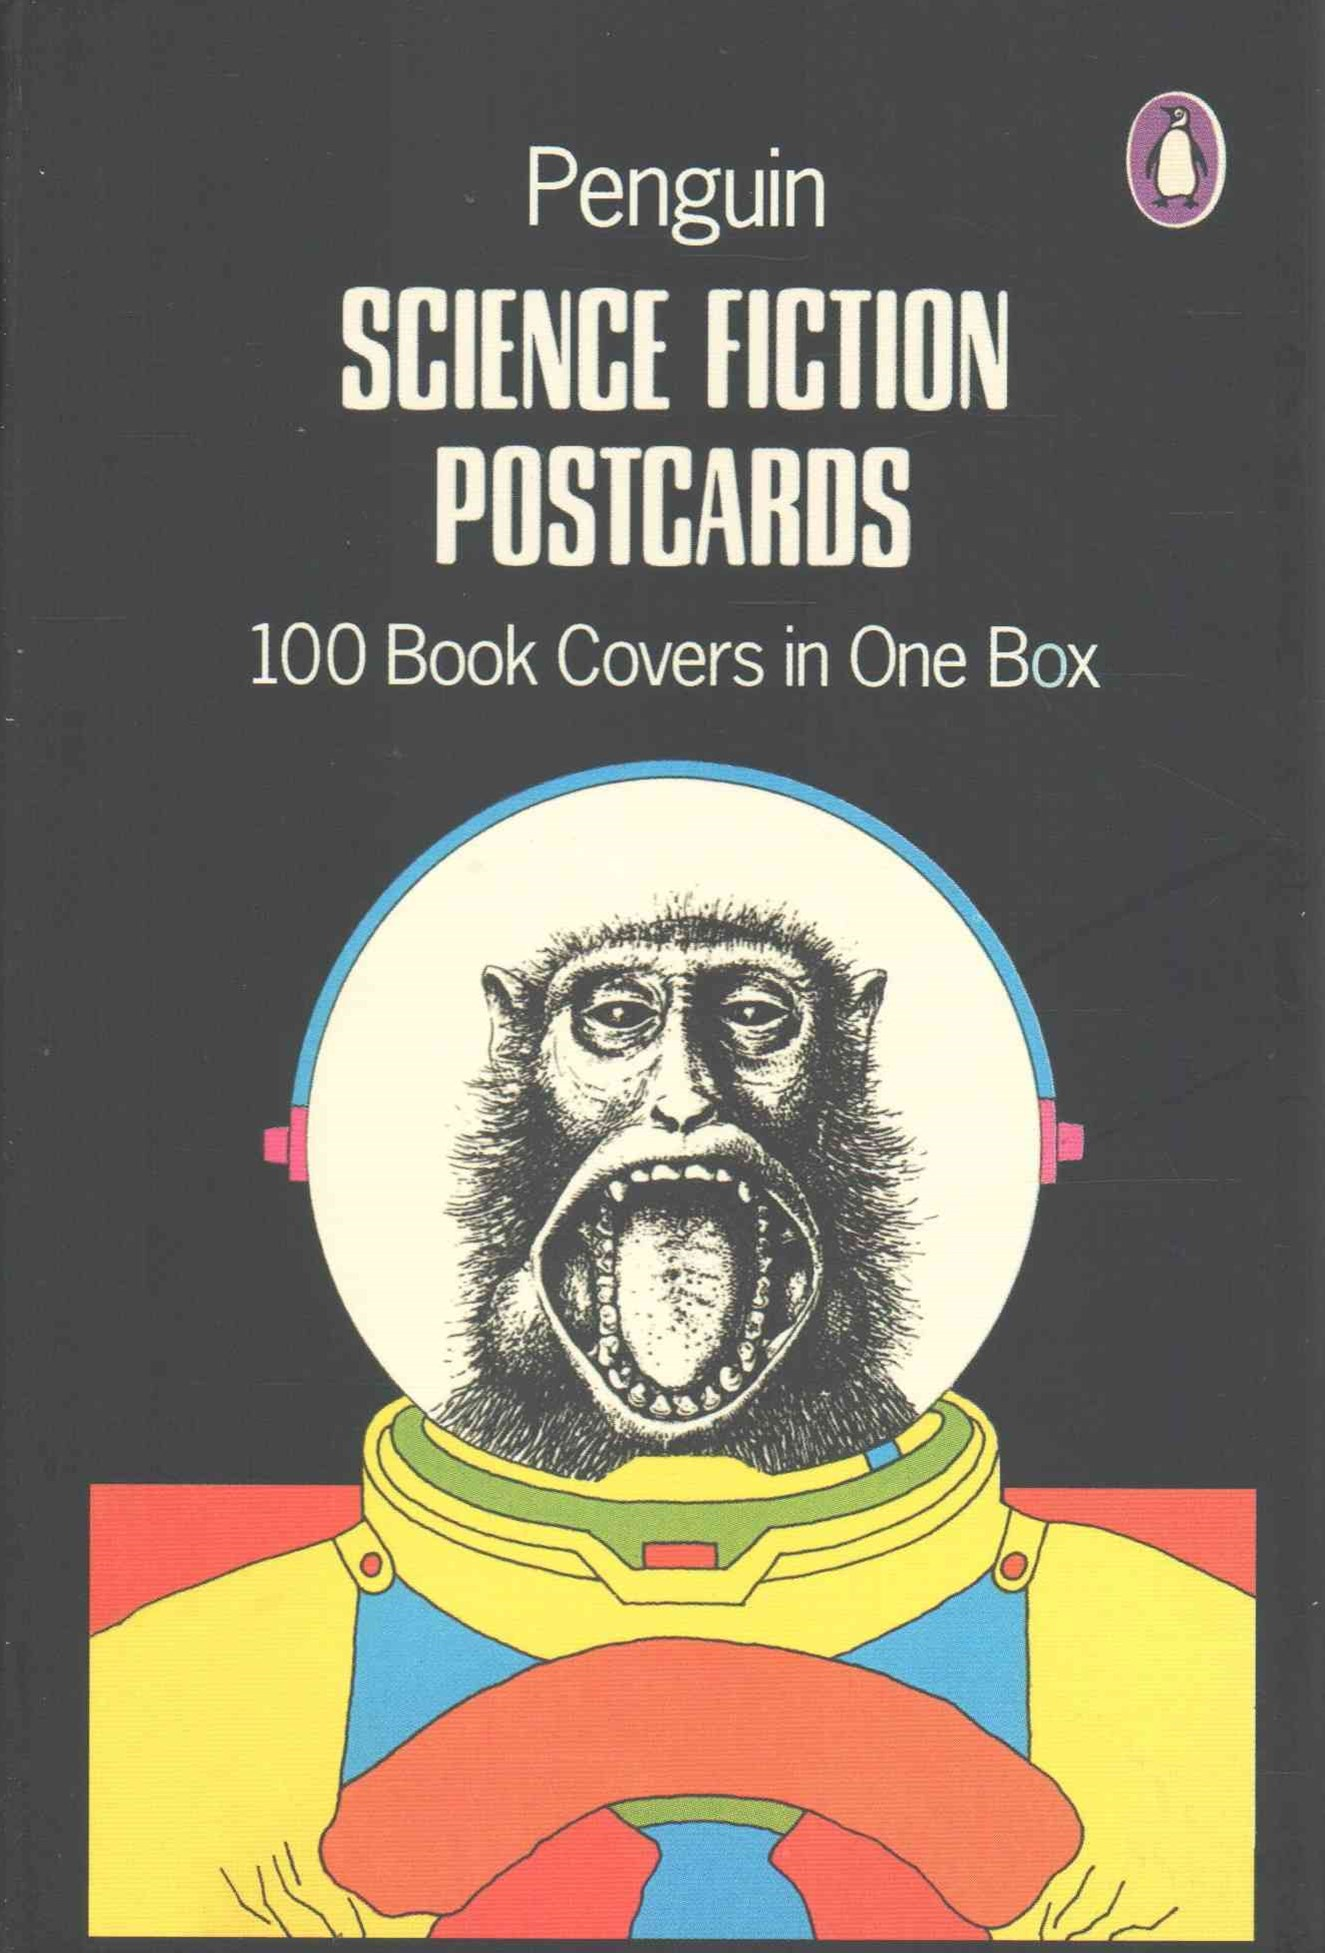 Penguin Science Fiction Postcards